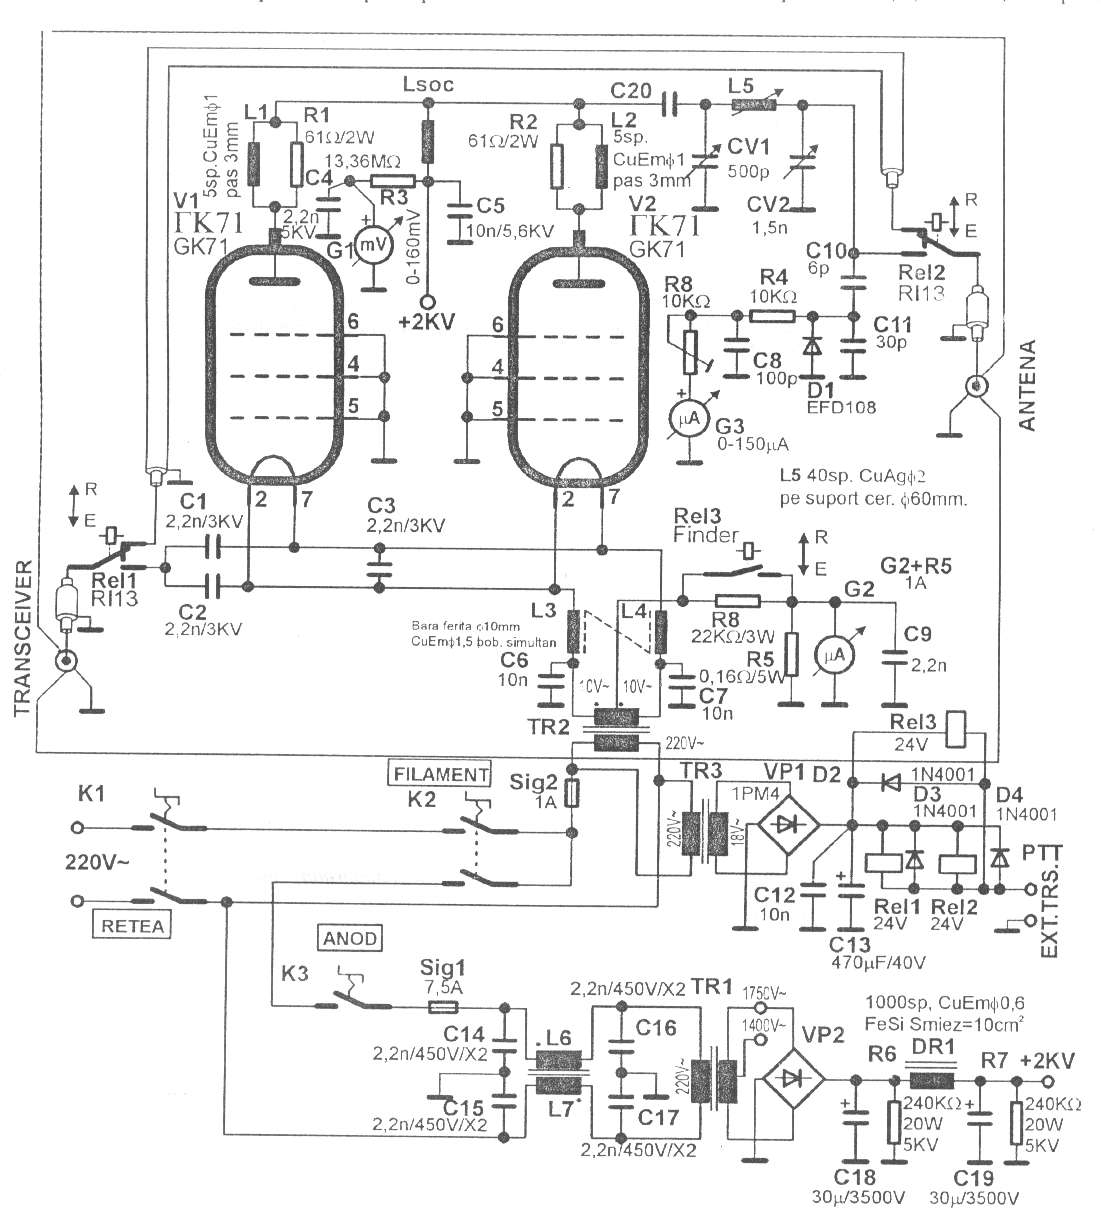 2 x 23 watts power amplifier schematics